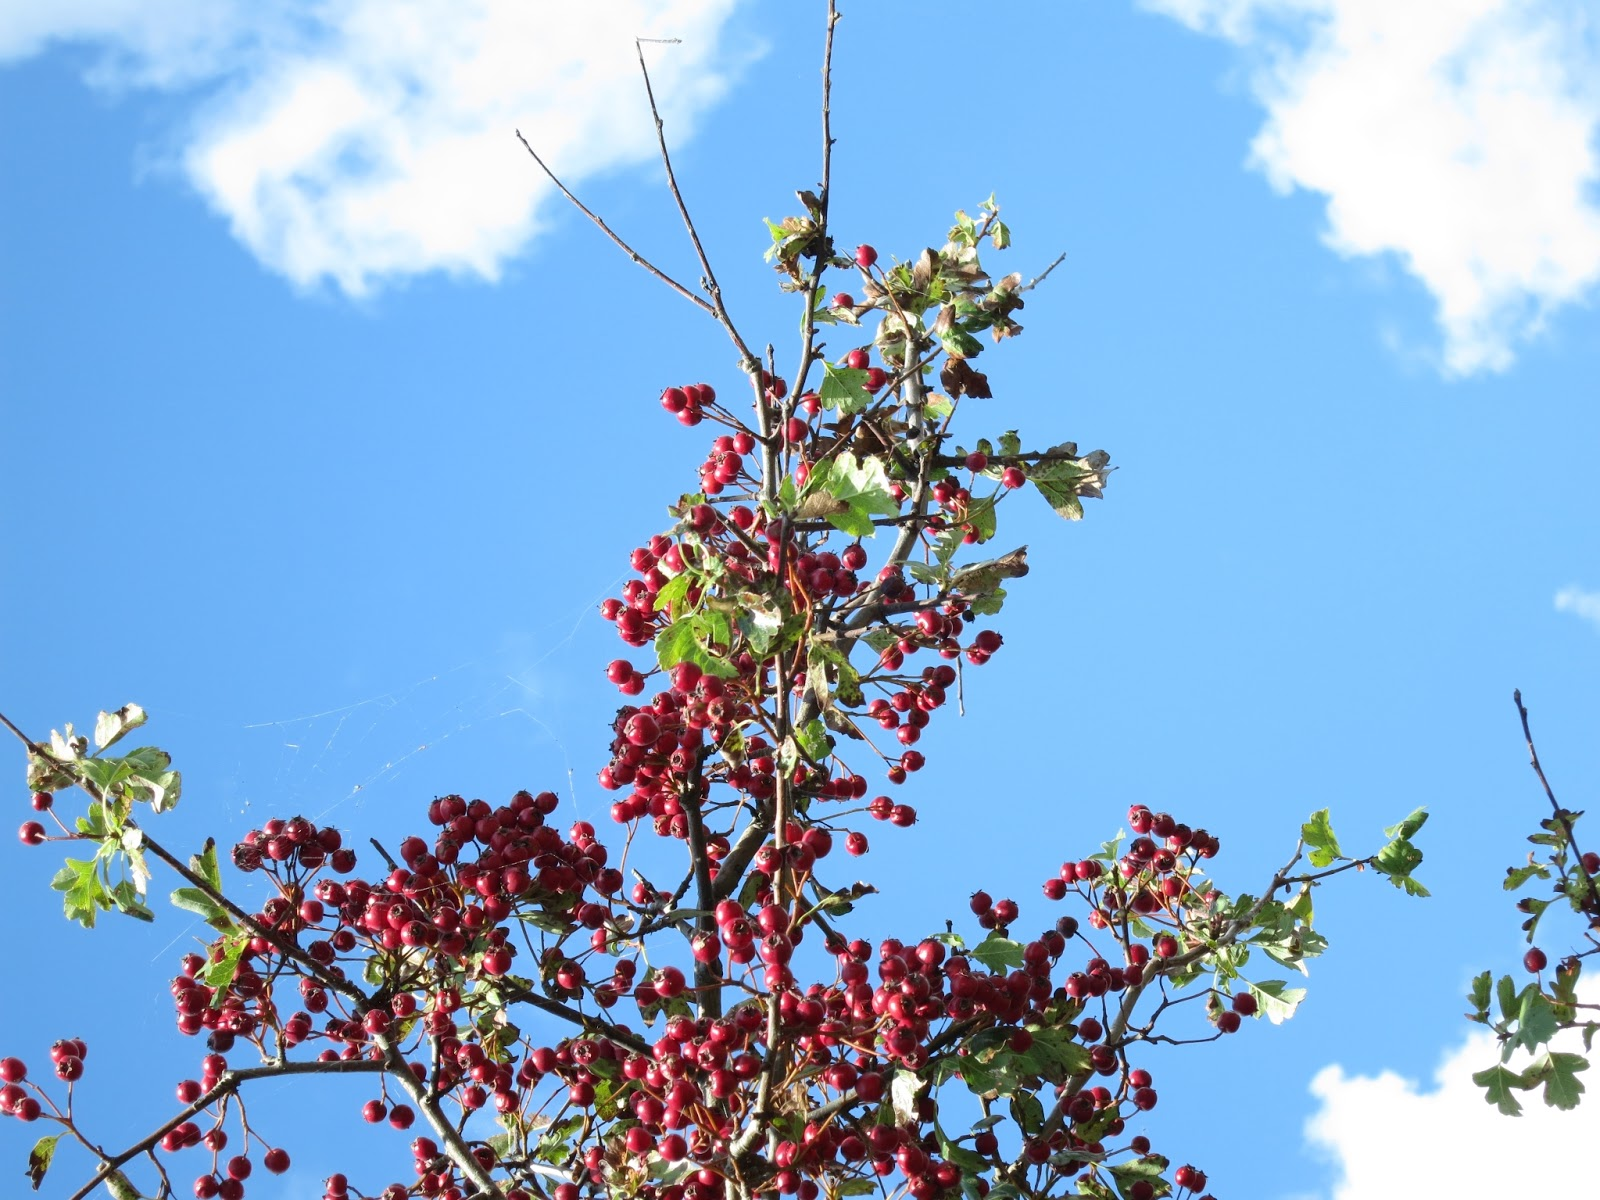 Bright red haws against blue sky with clouds